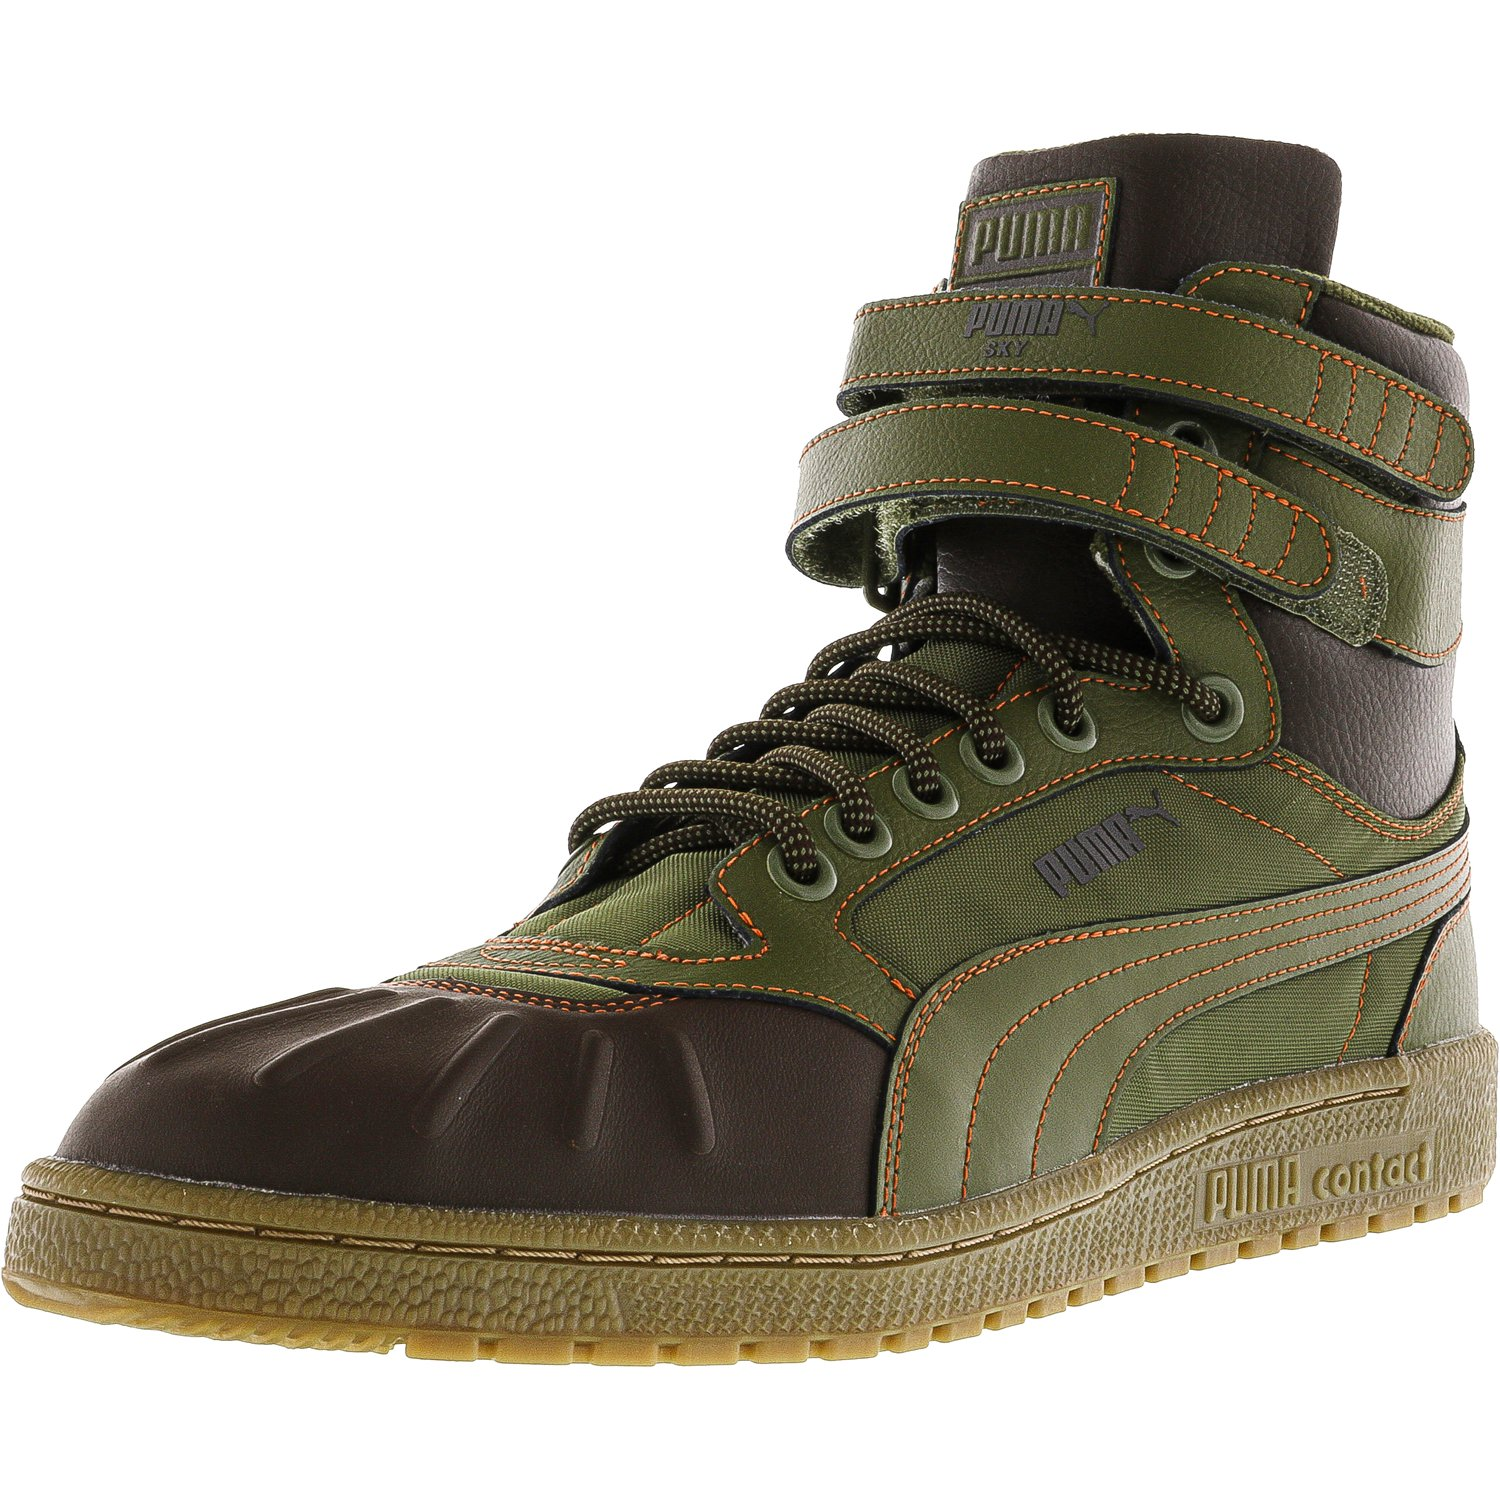 2769b65f177 PUMA - Puma Men s Sky Ii Hi Duck Boot Black Ankle-High Leather Fashion  Sneaker - 11M - Walmart.com